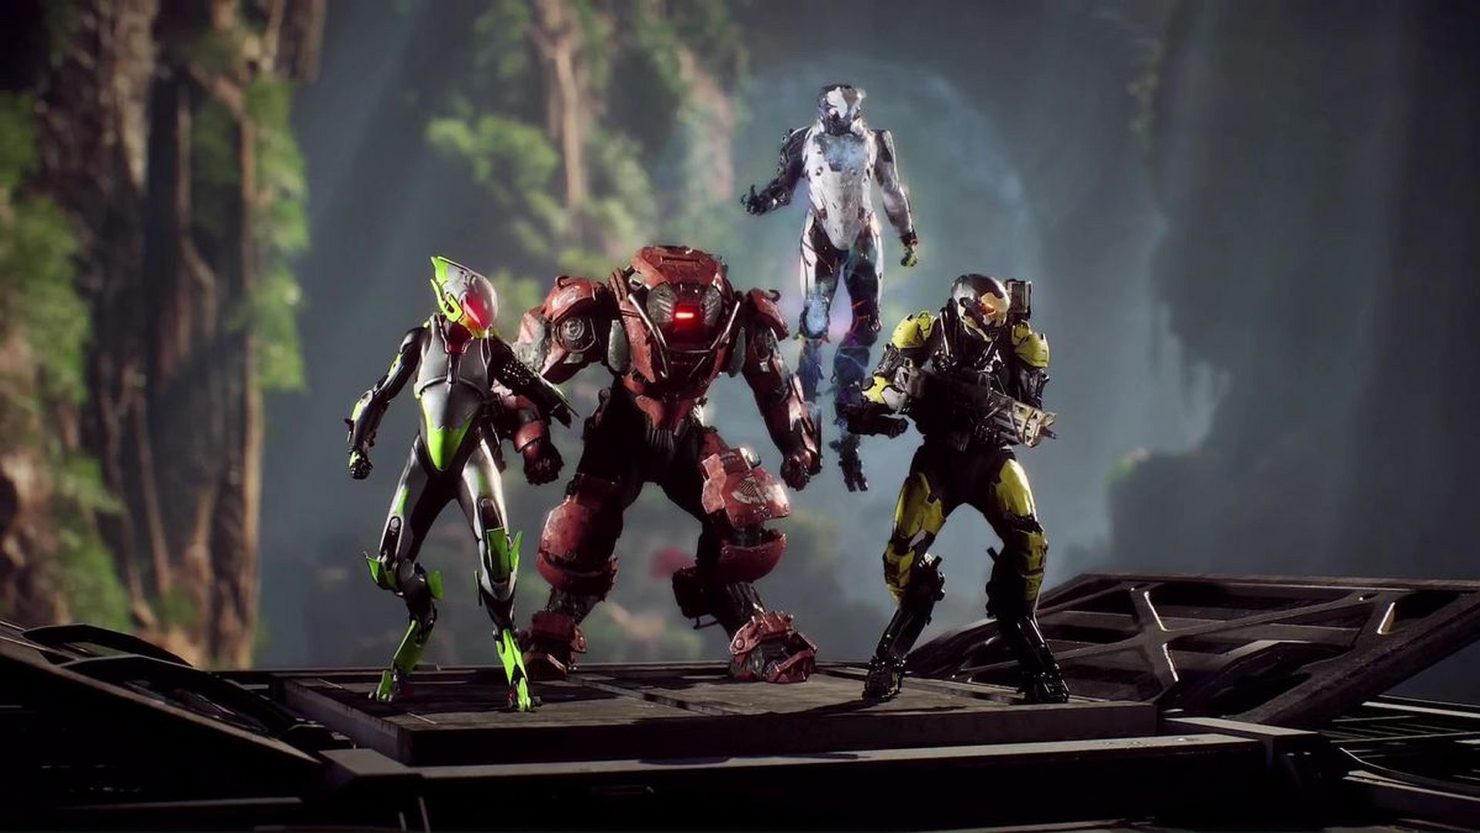 10 4k Hdr Anthem Wallpapers You Need To Make Your Desktop Background